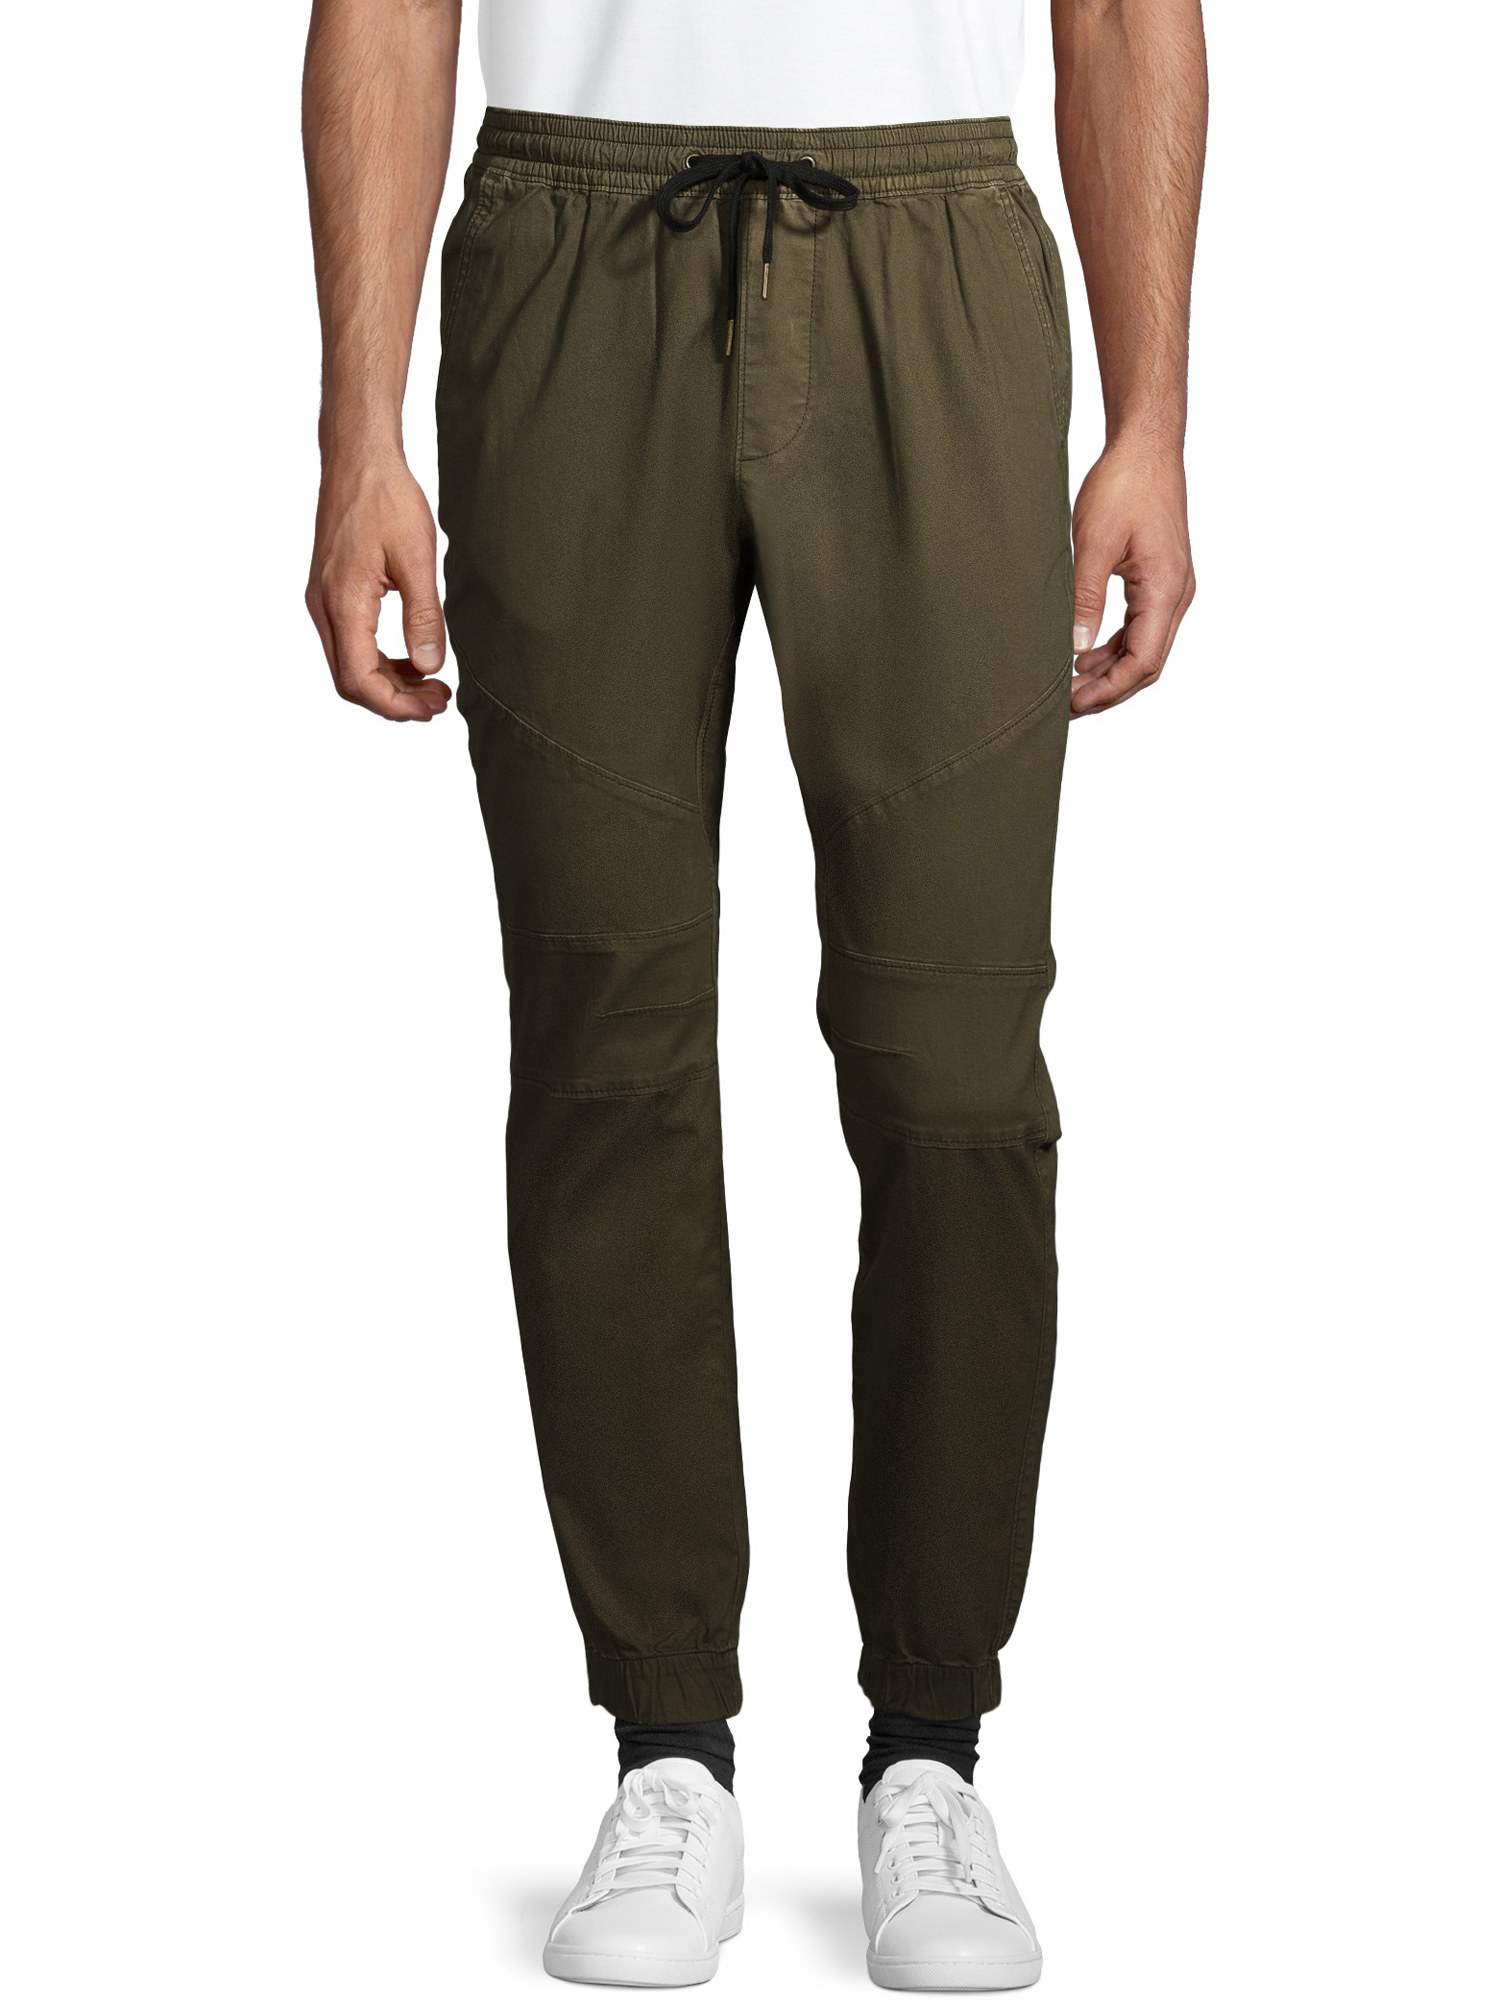 person wearing olive green jogger pants